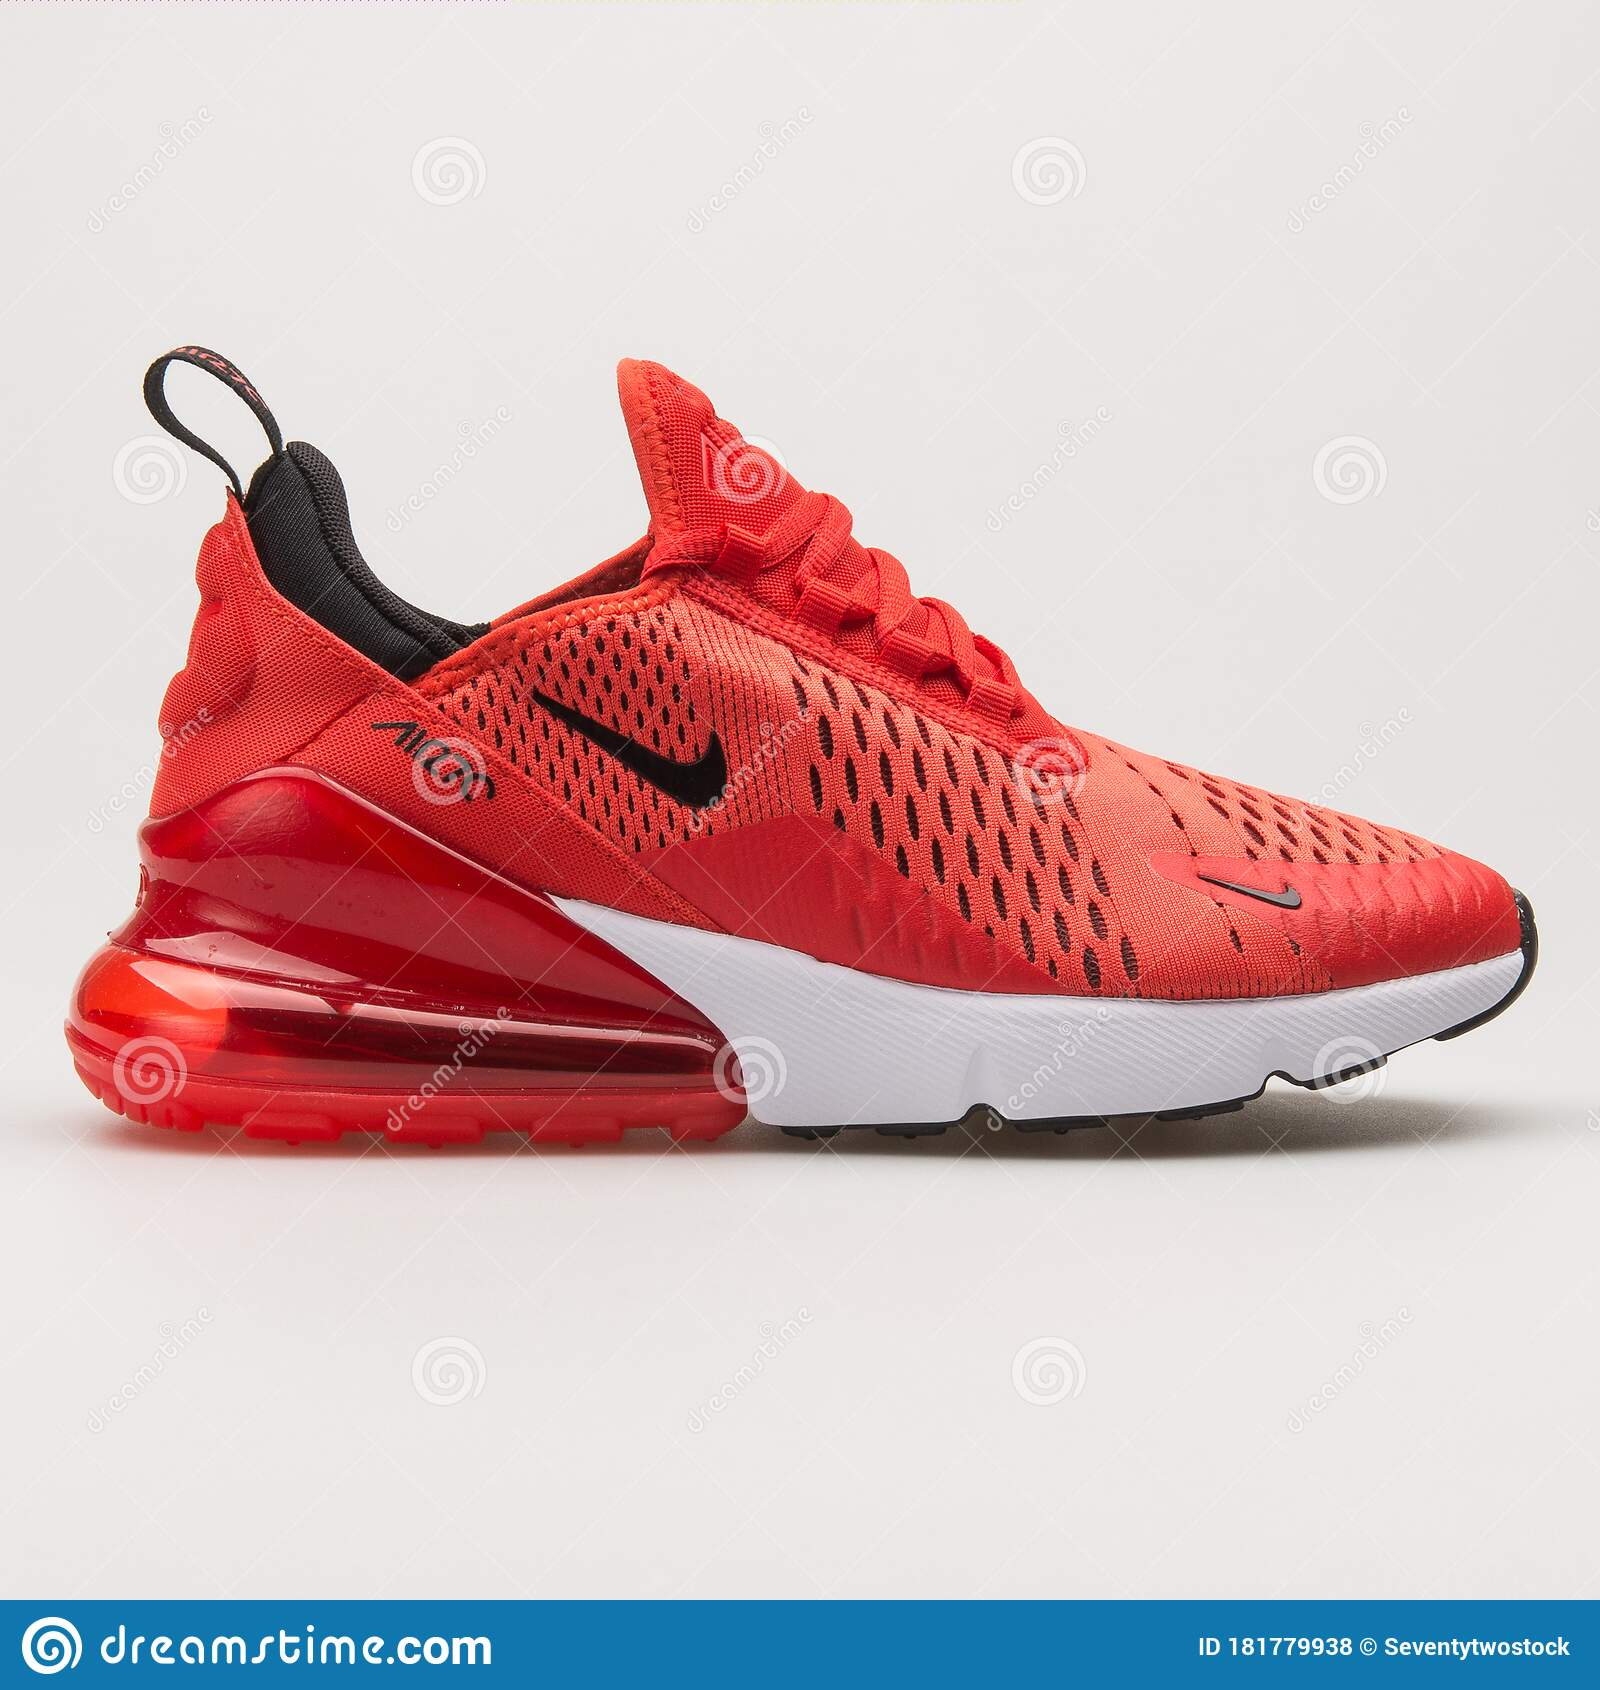 Nike Air Max 270 Red, Black And White